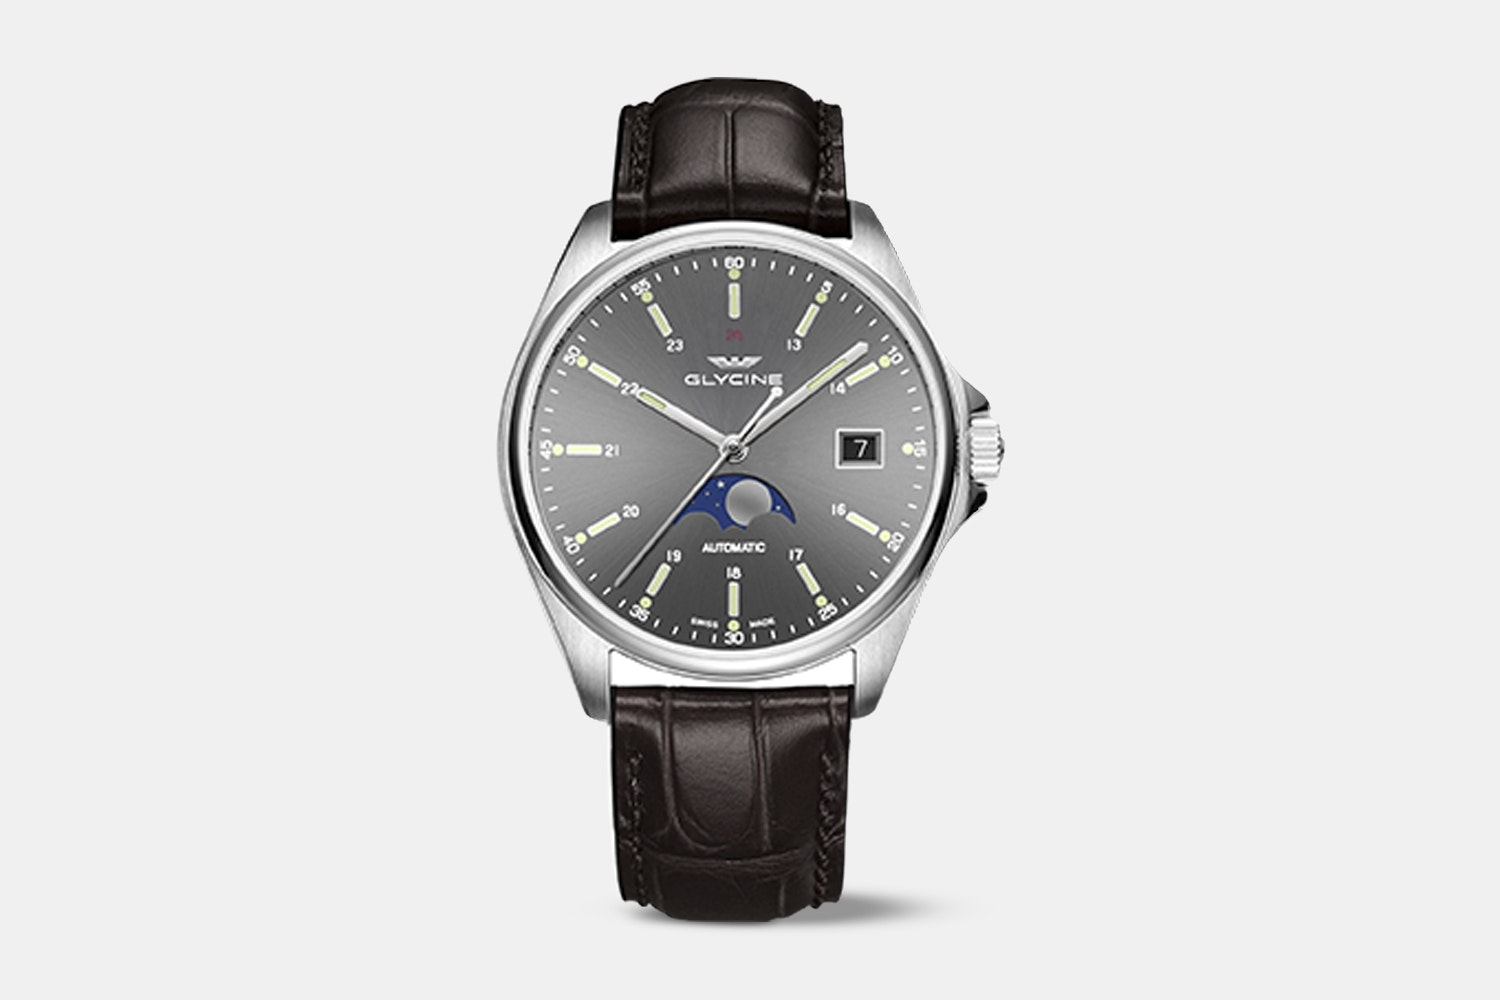 GL0114 | Anthracite Dial, Brown Leather Strap